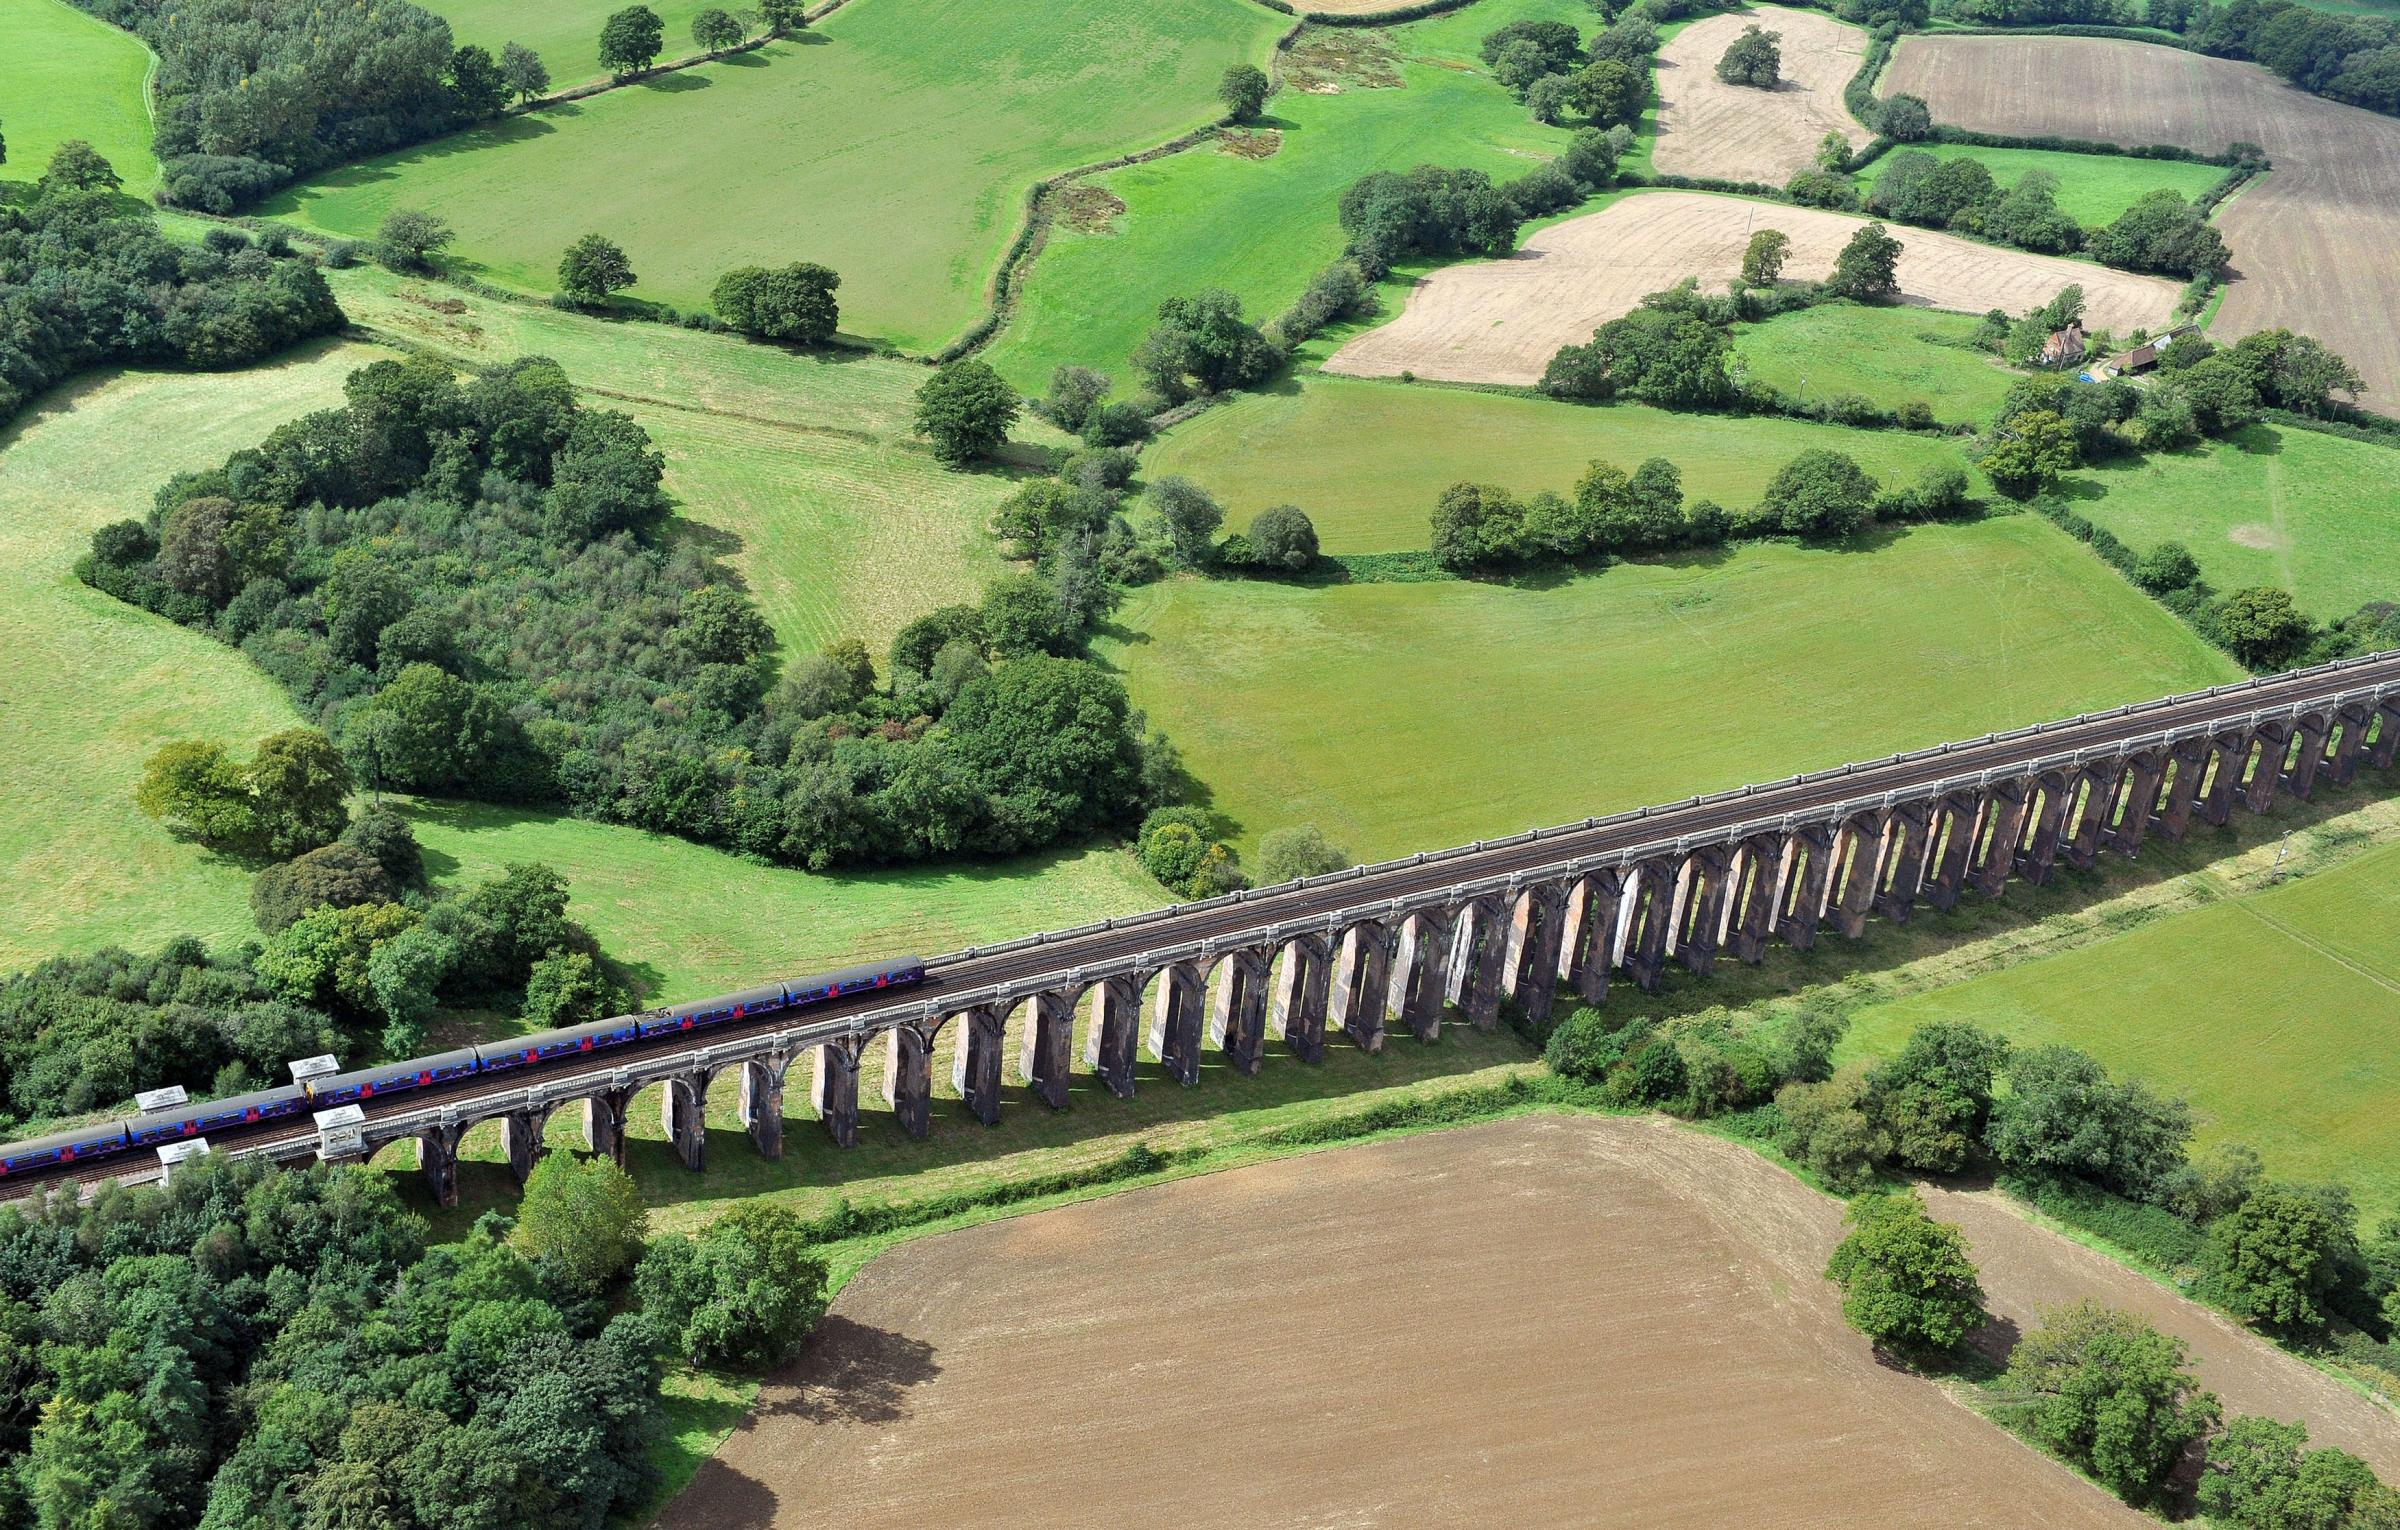 A view of of the Ouse Valley viaduct also called Balcombe Viaduct